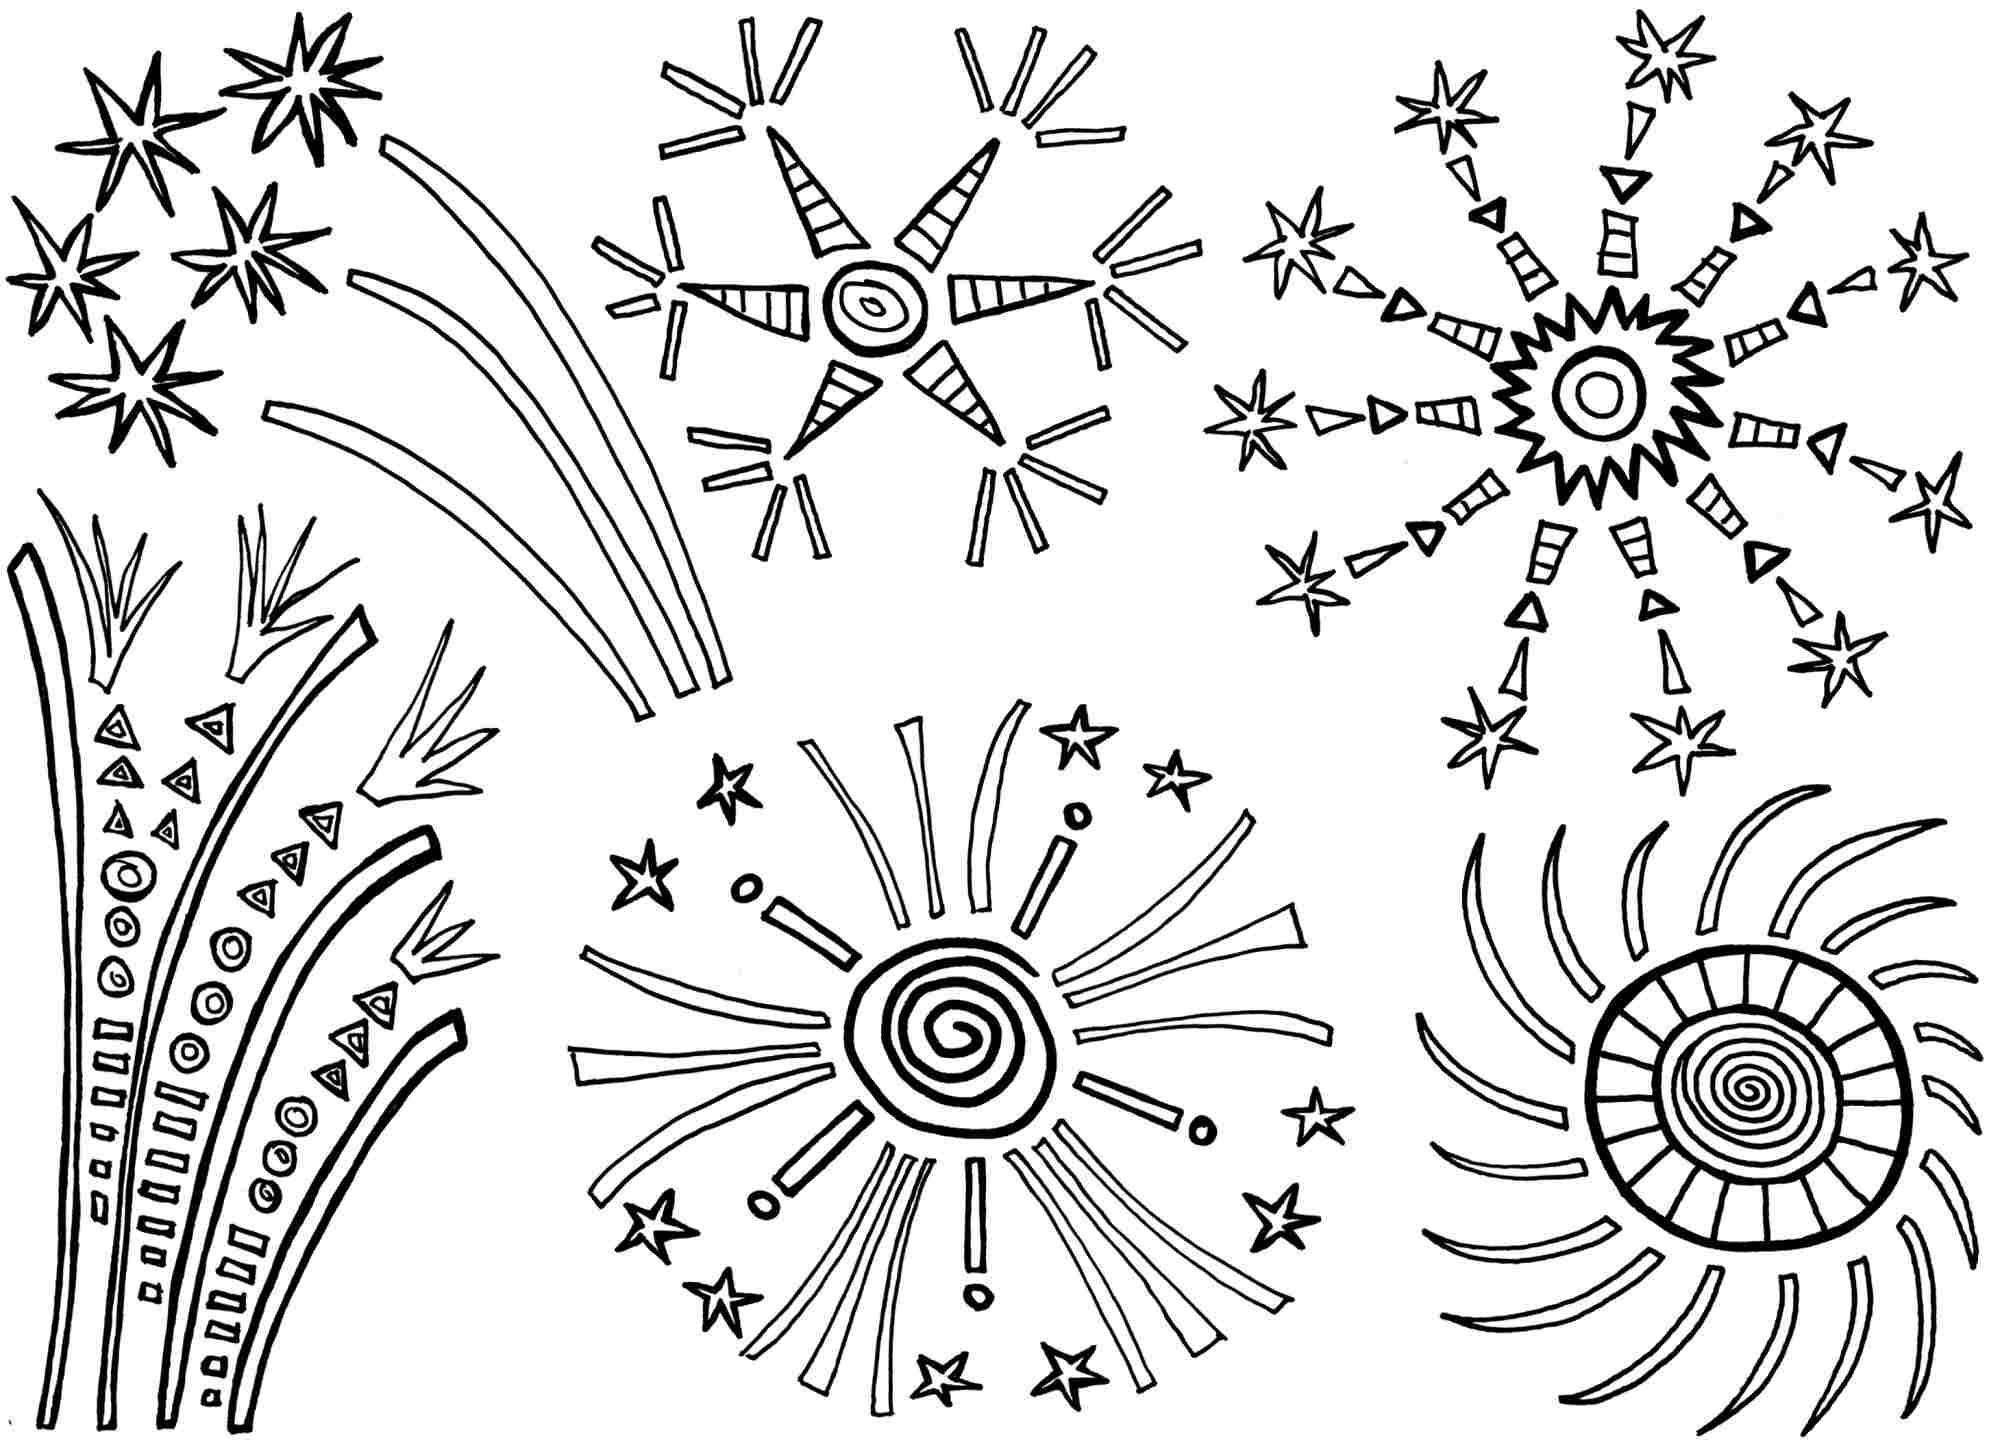 Coloring page of fireworks